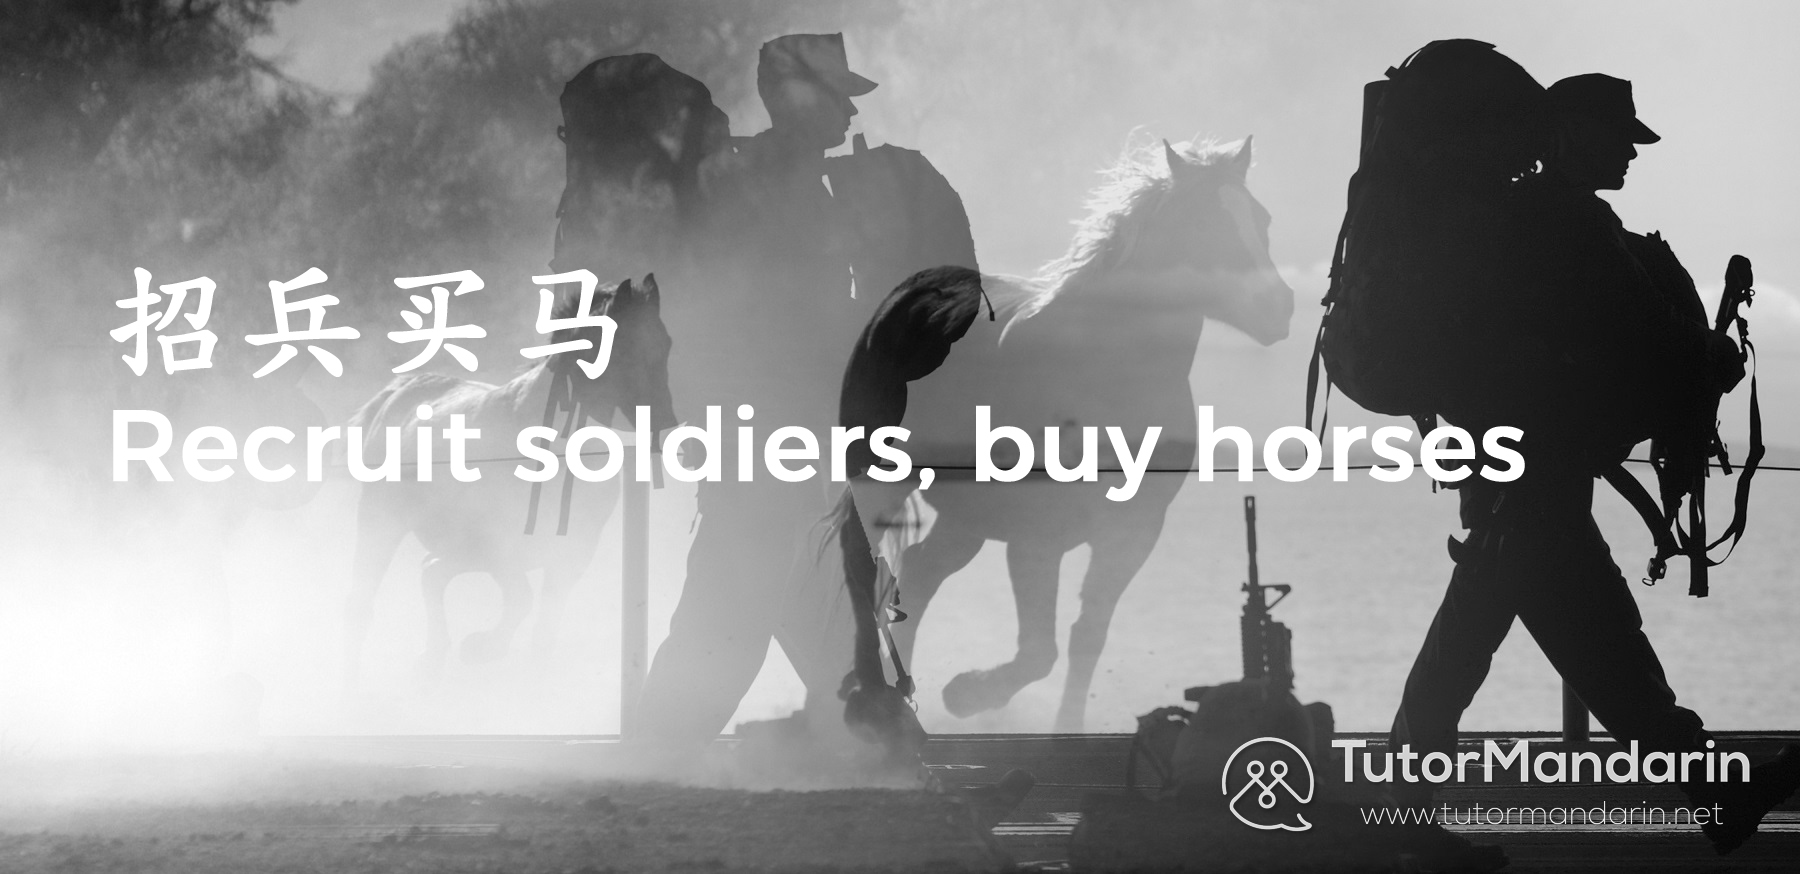 recruit-soldiers-buy-horses-blog-01